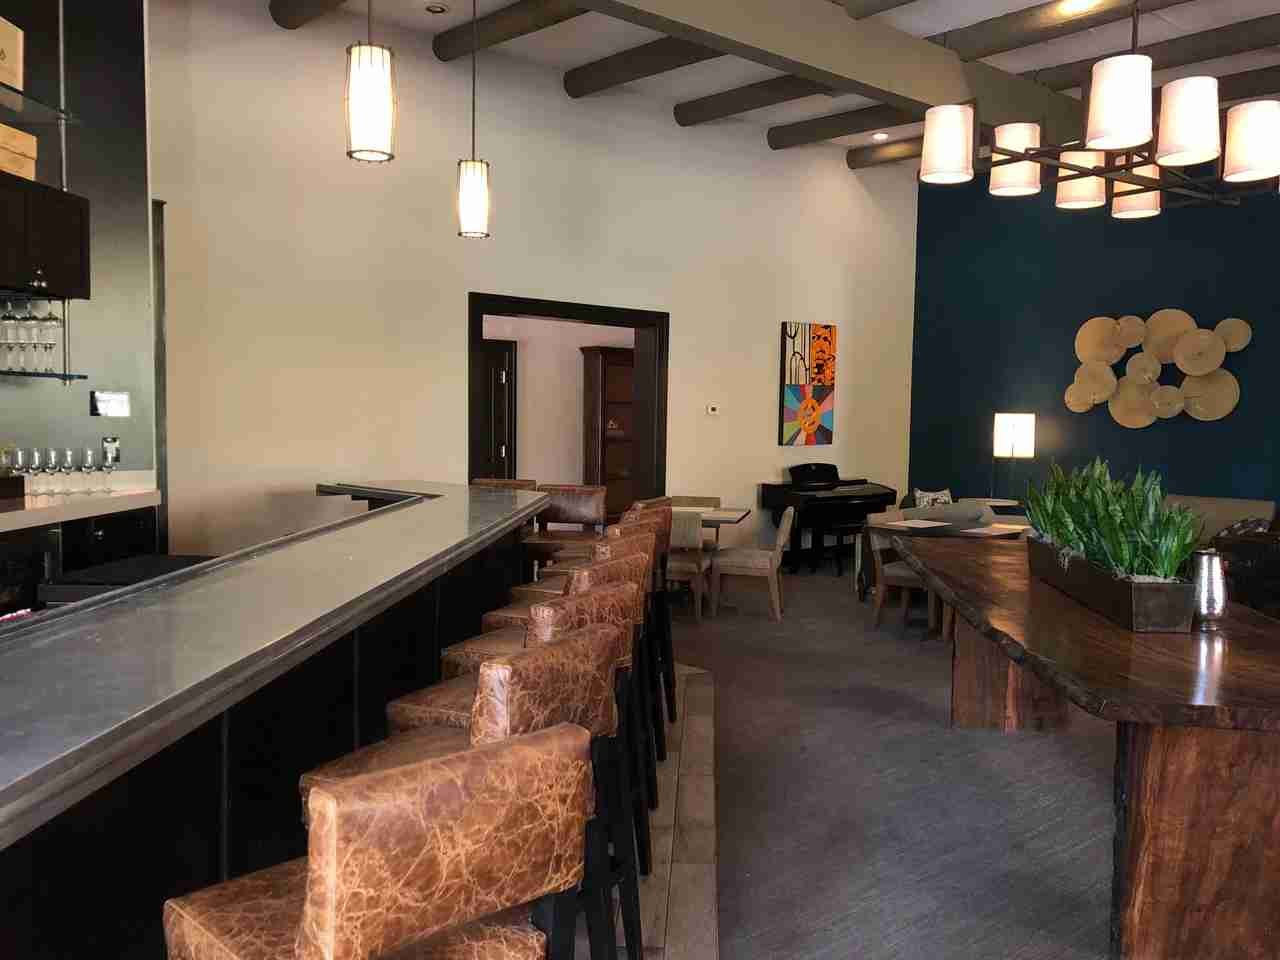 Casual dining is available at the Miraval Arizona bar